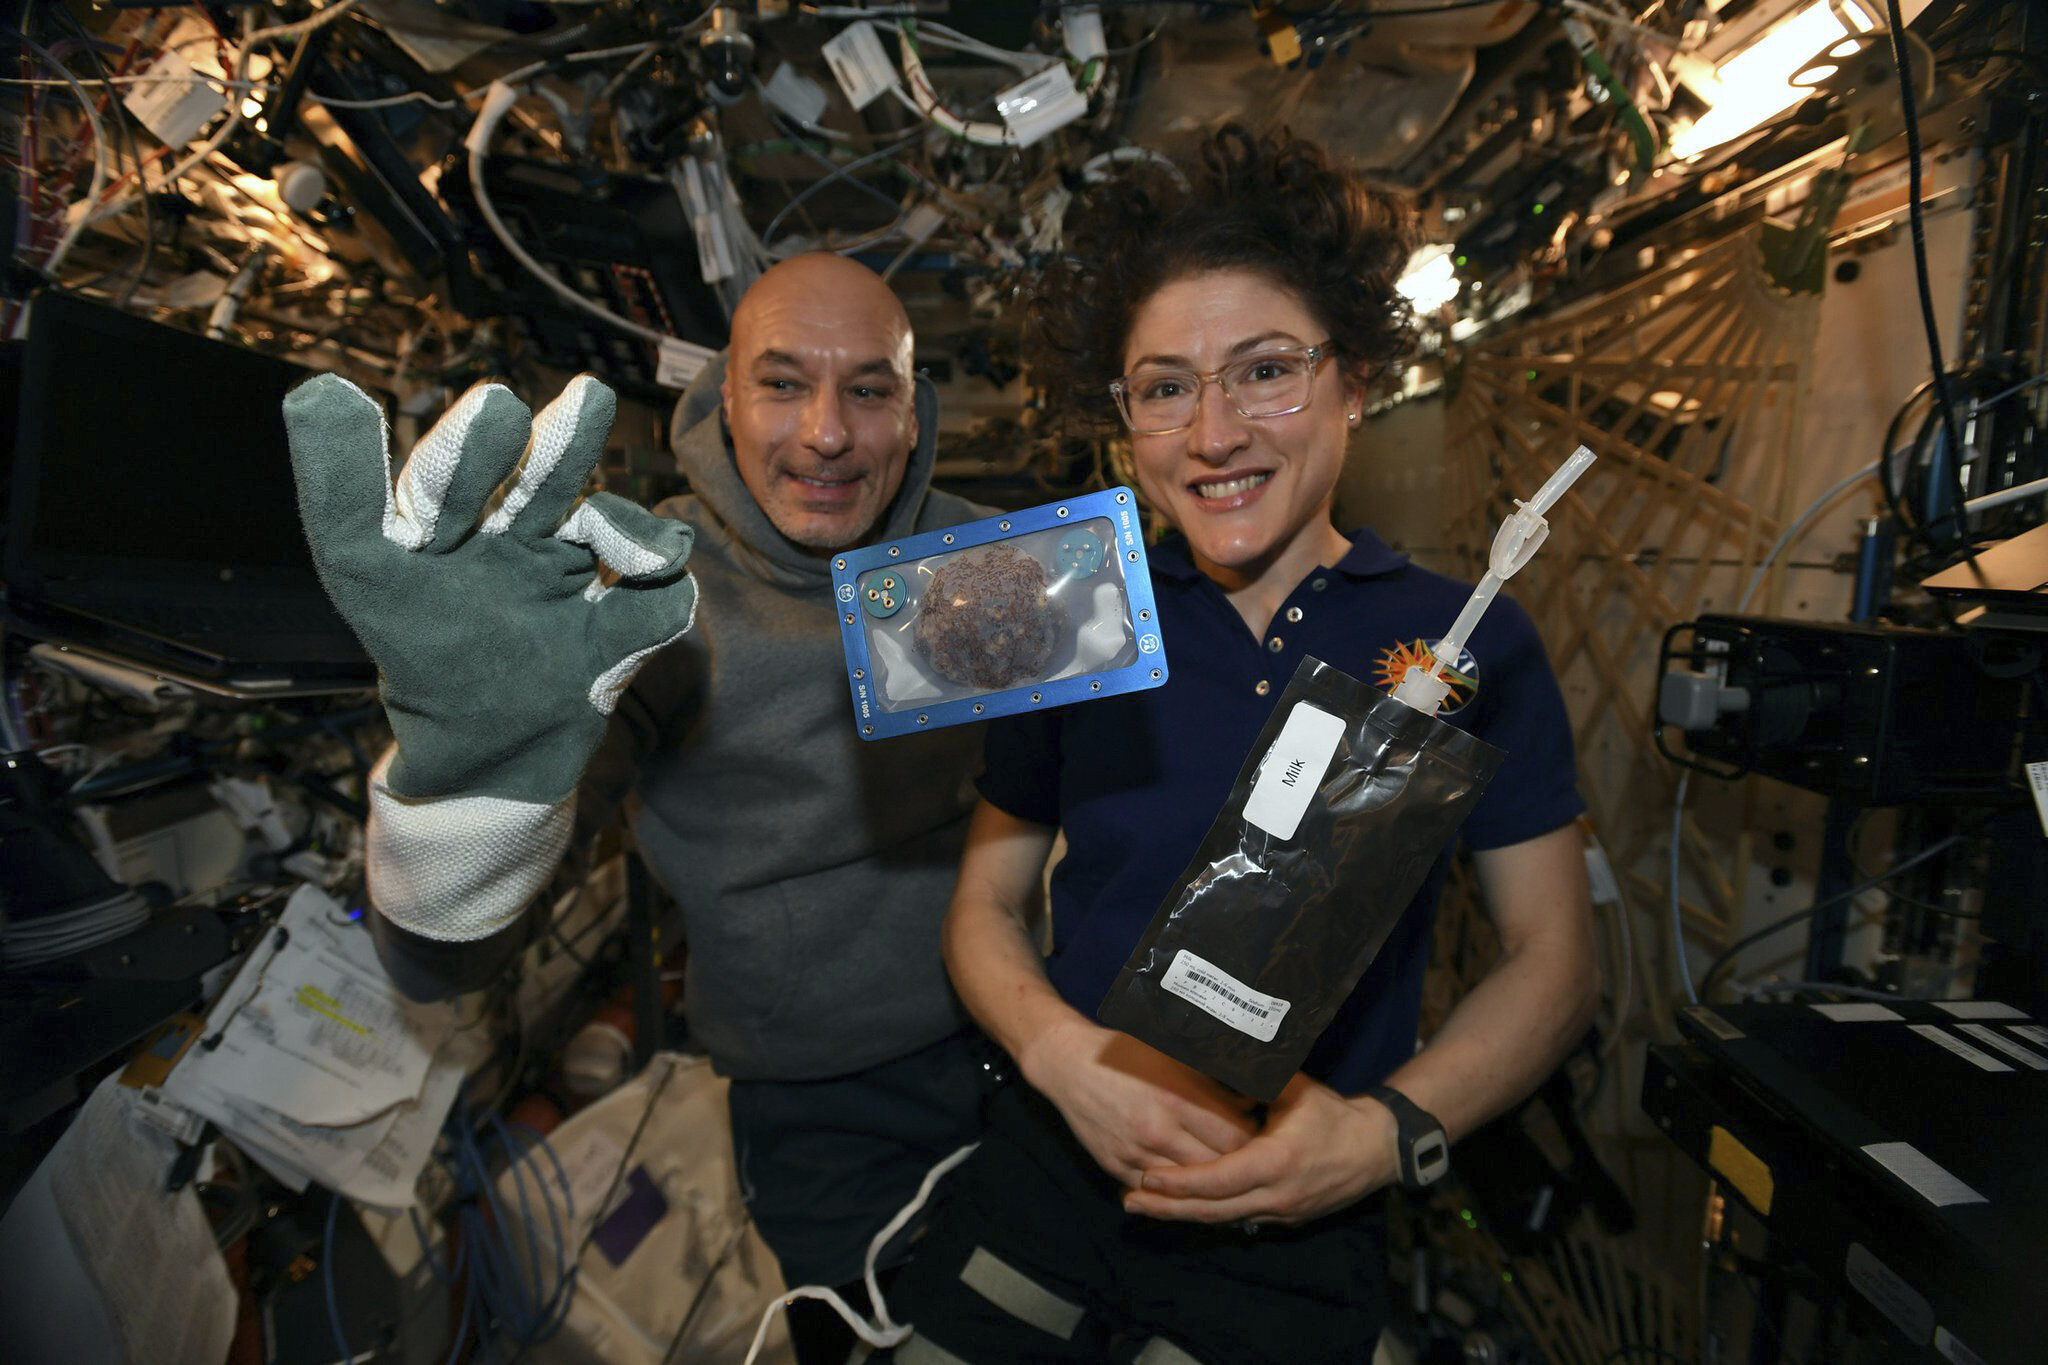 The first cookies baked in space are back on Earth!